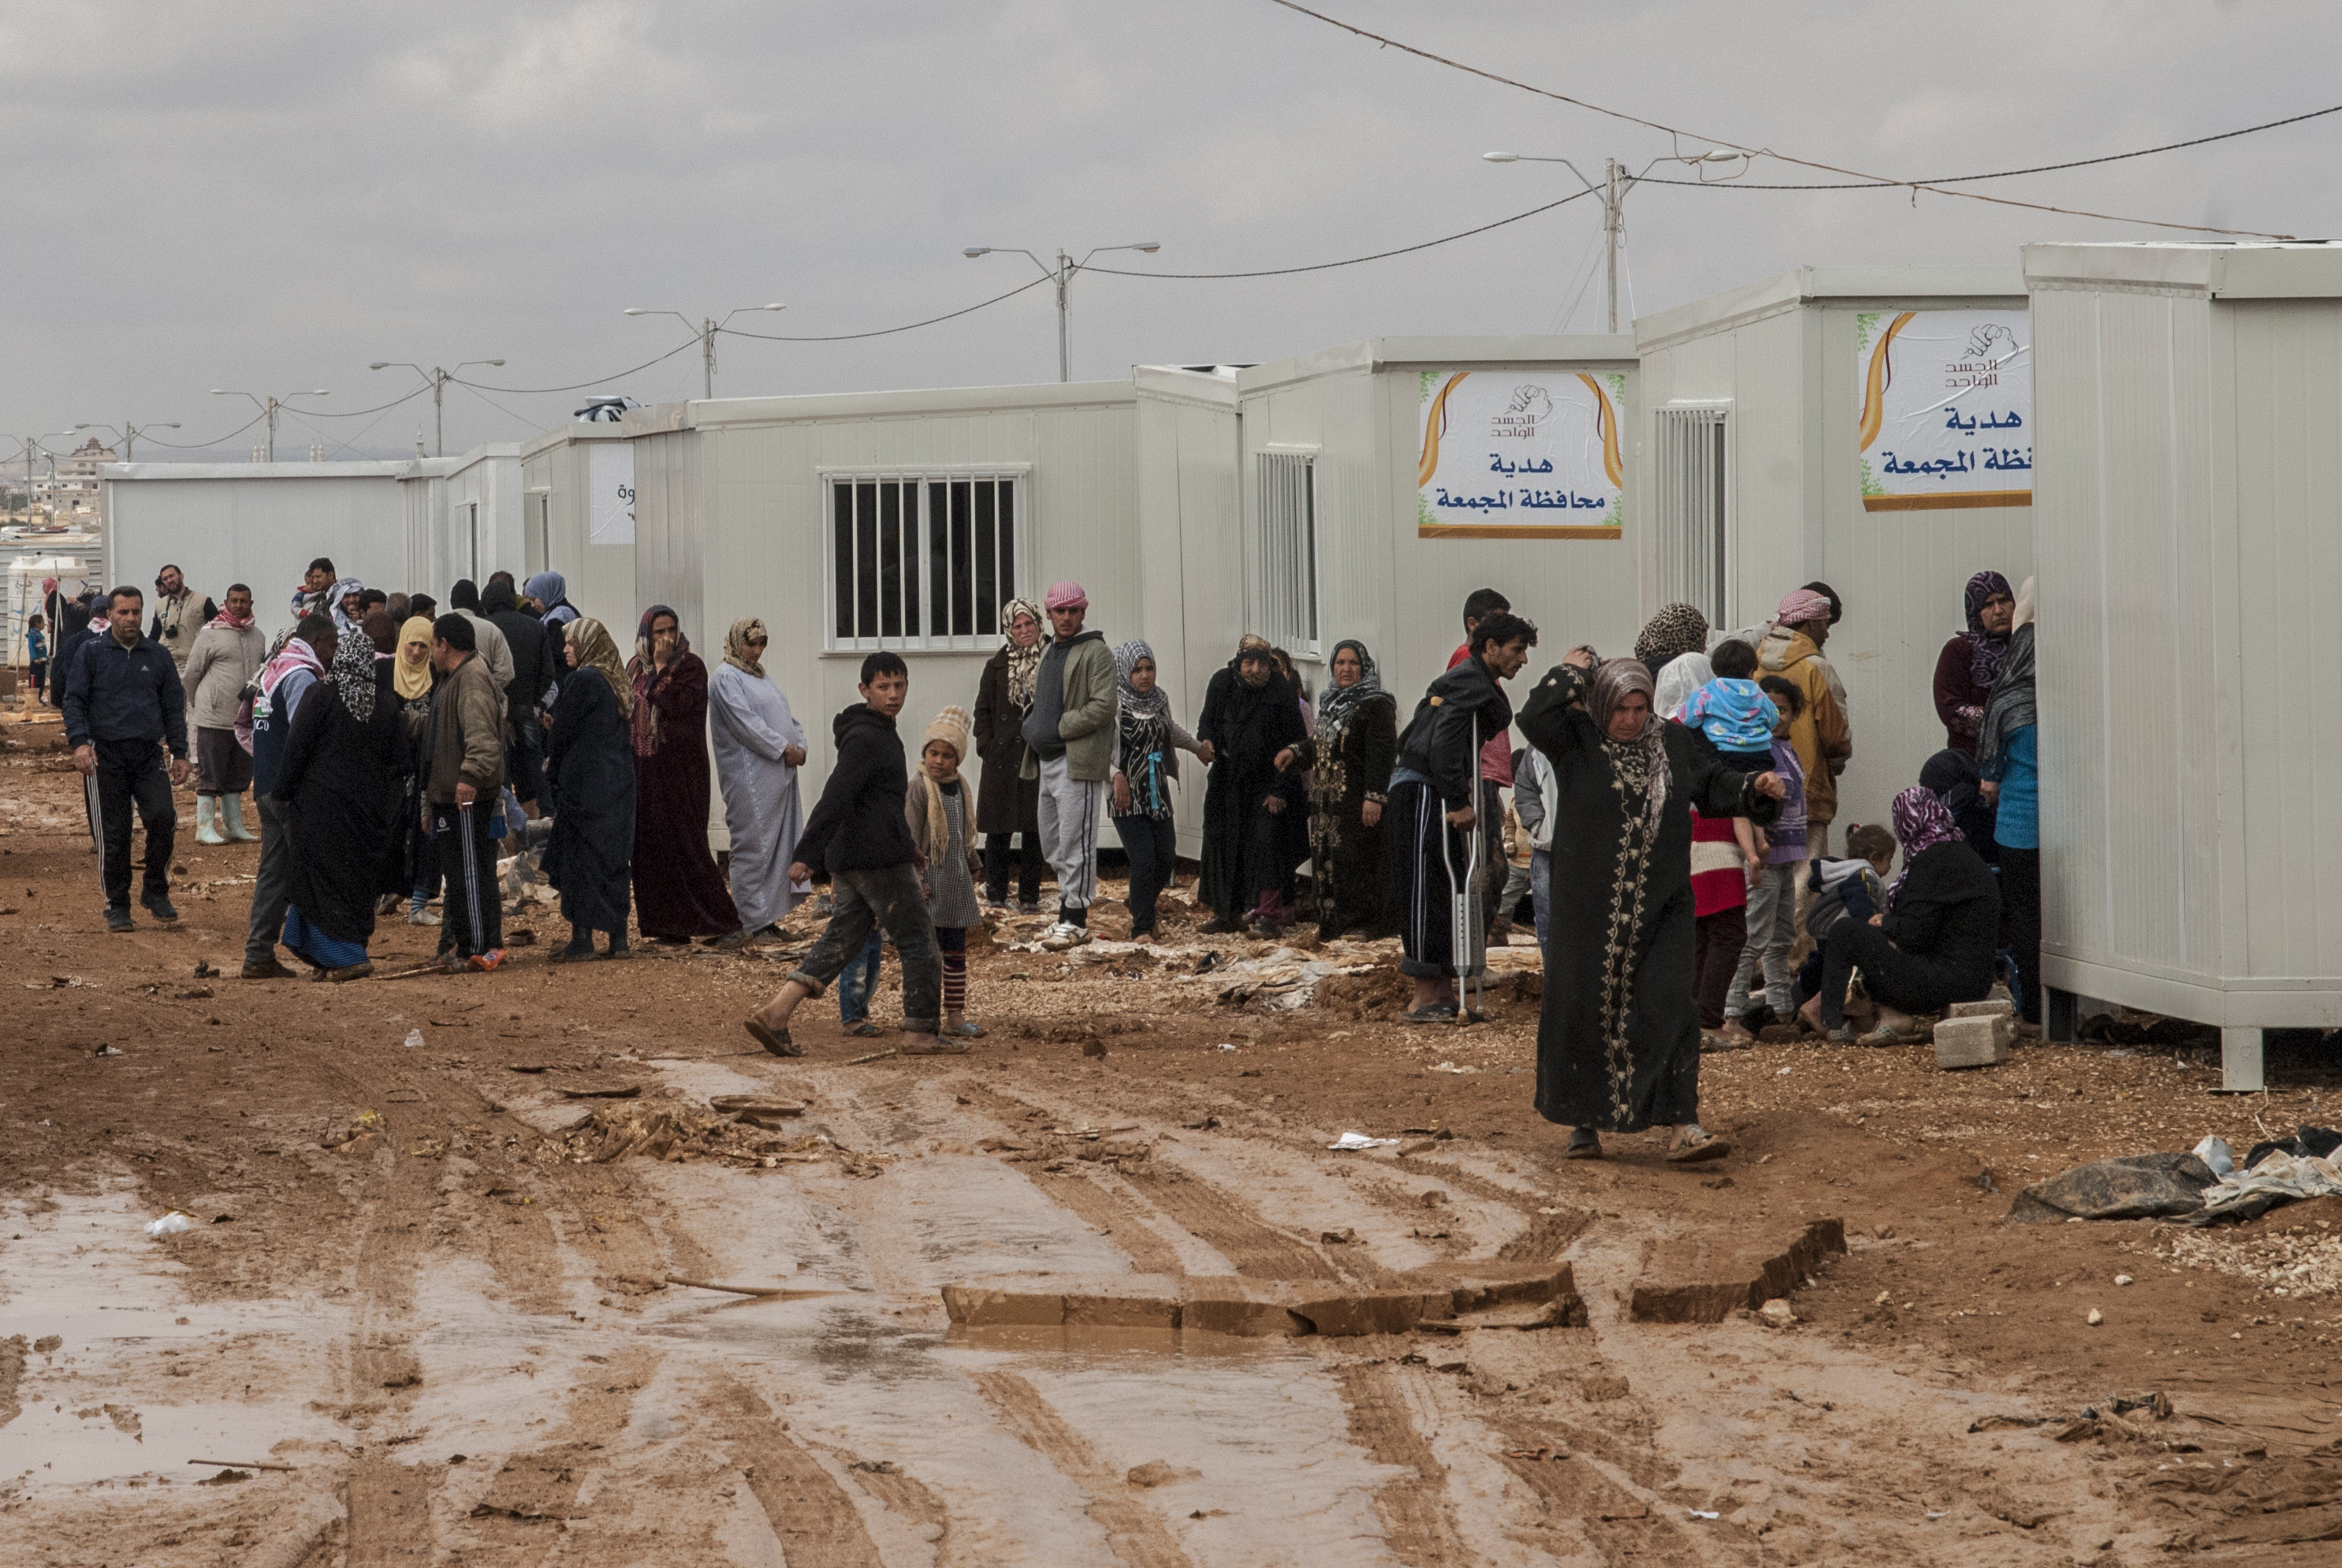 camp zaatari refugees